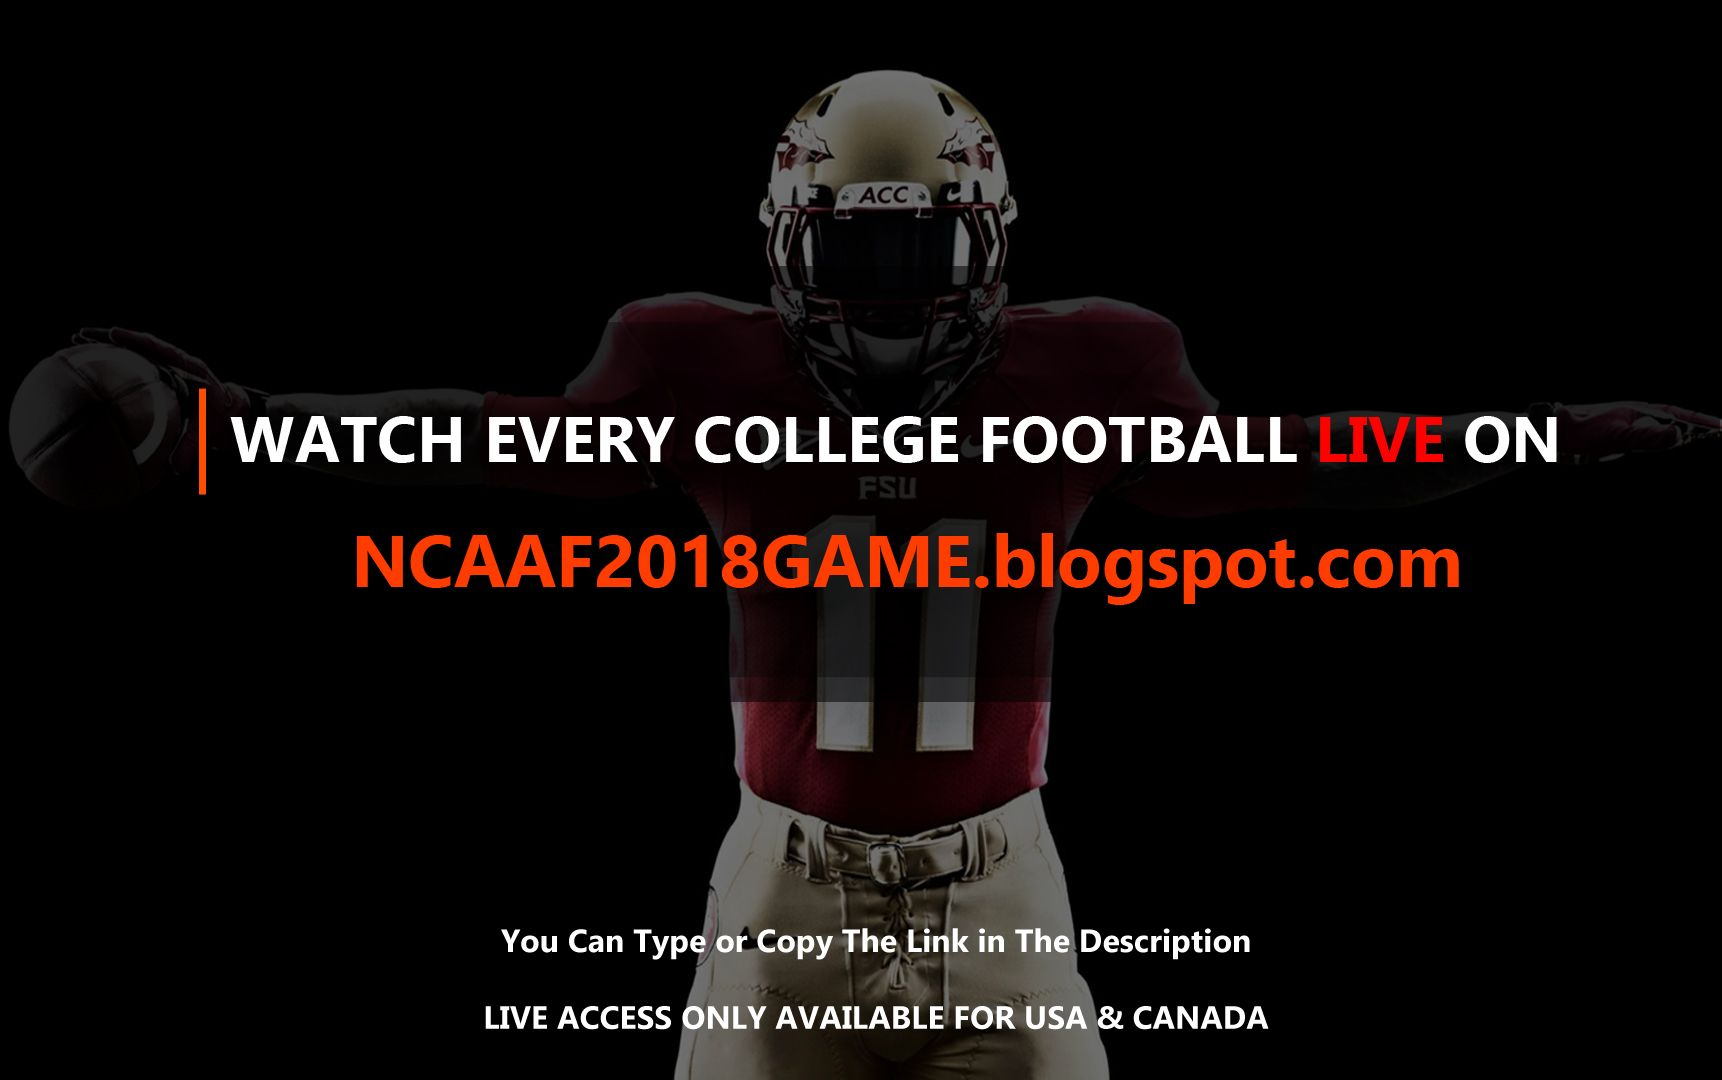 Pin By Mikel Jonson On College Football 2018 Live College Football